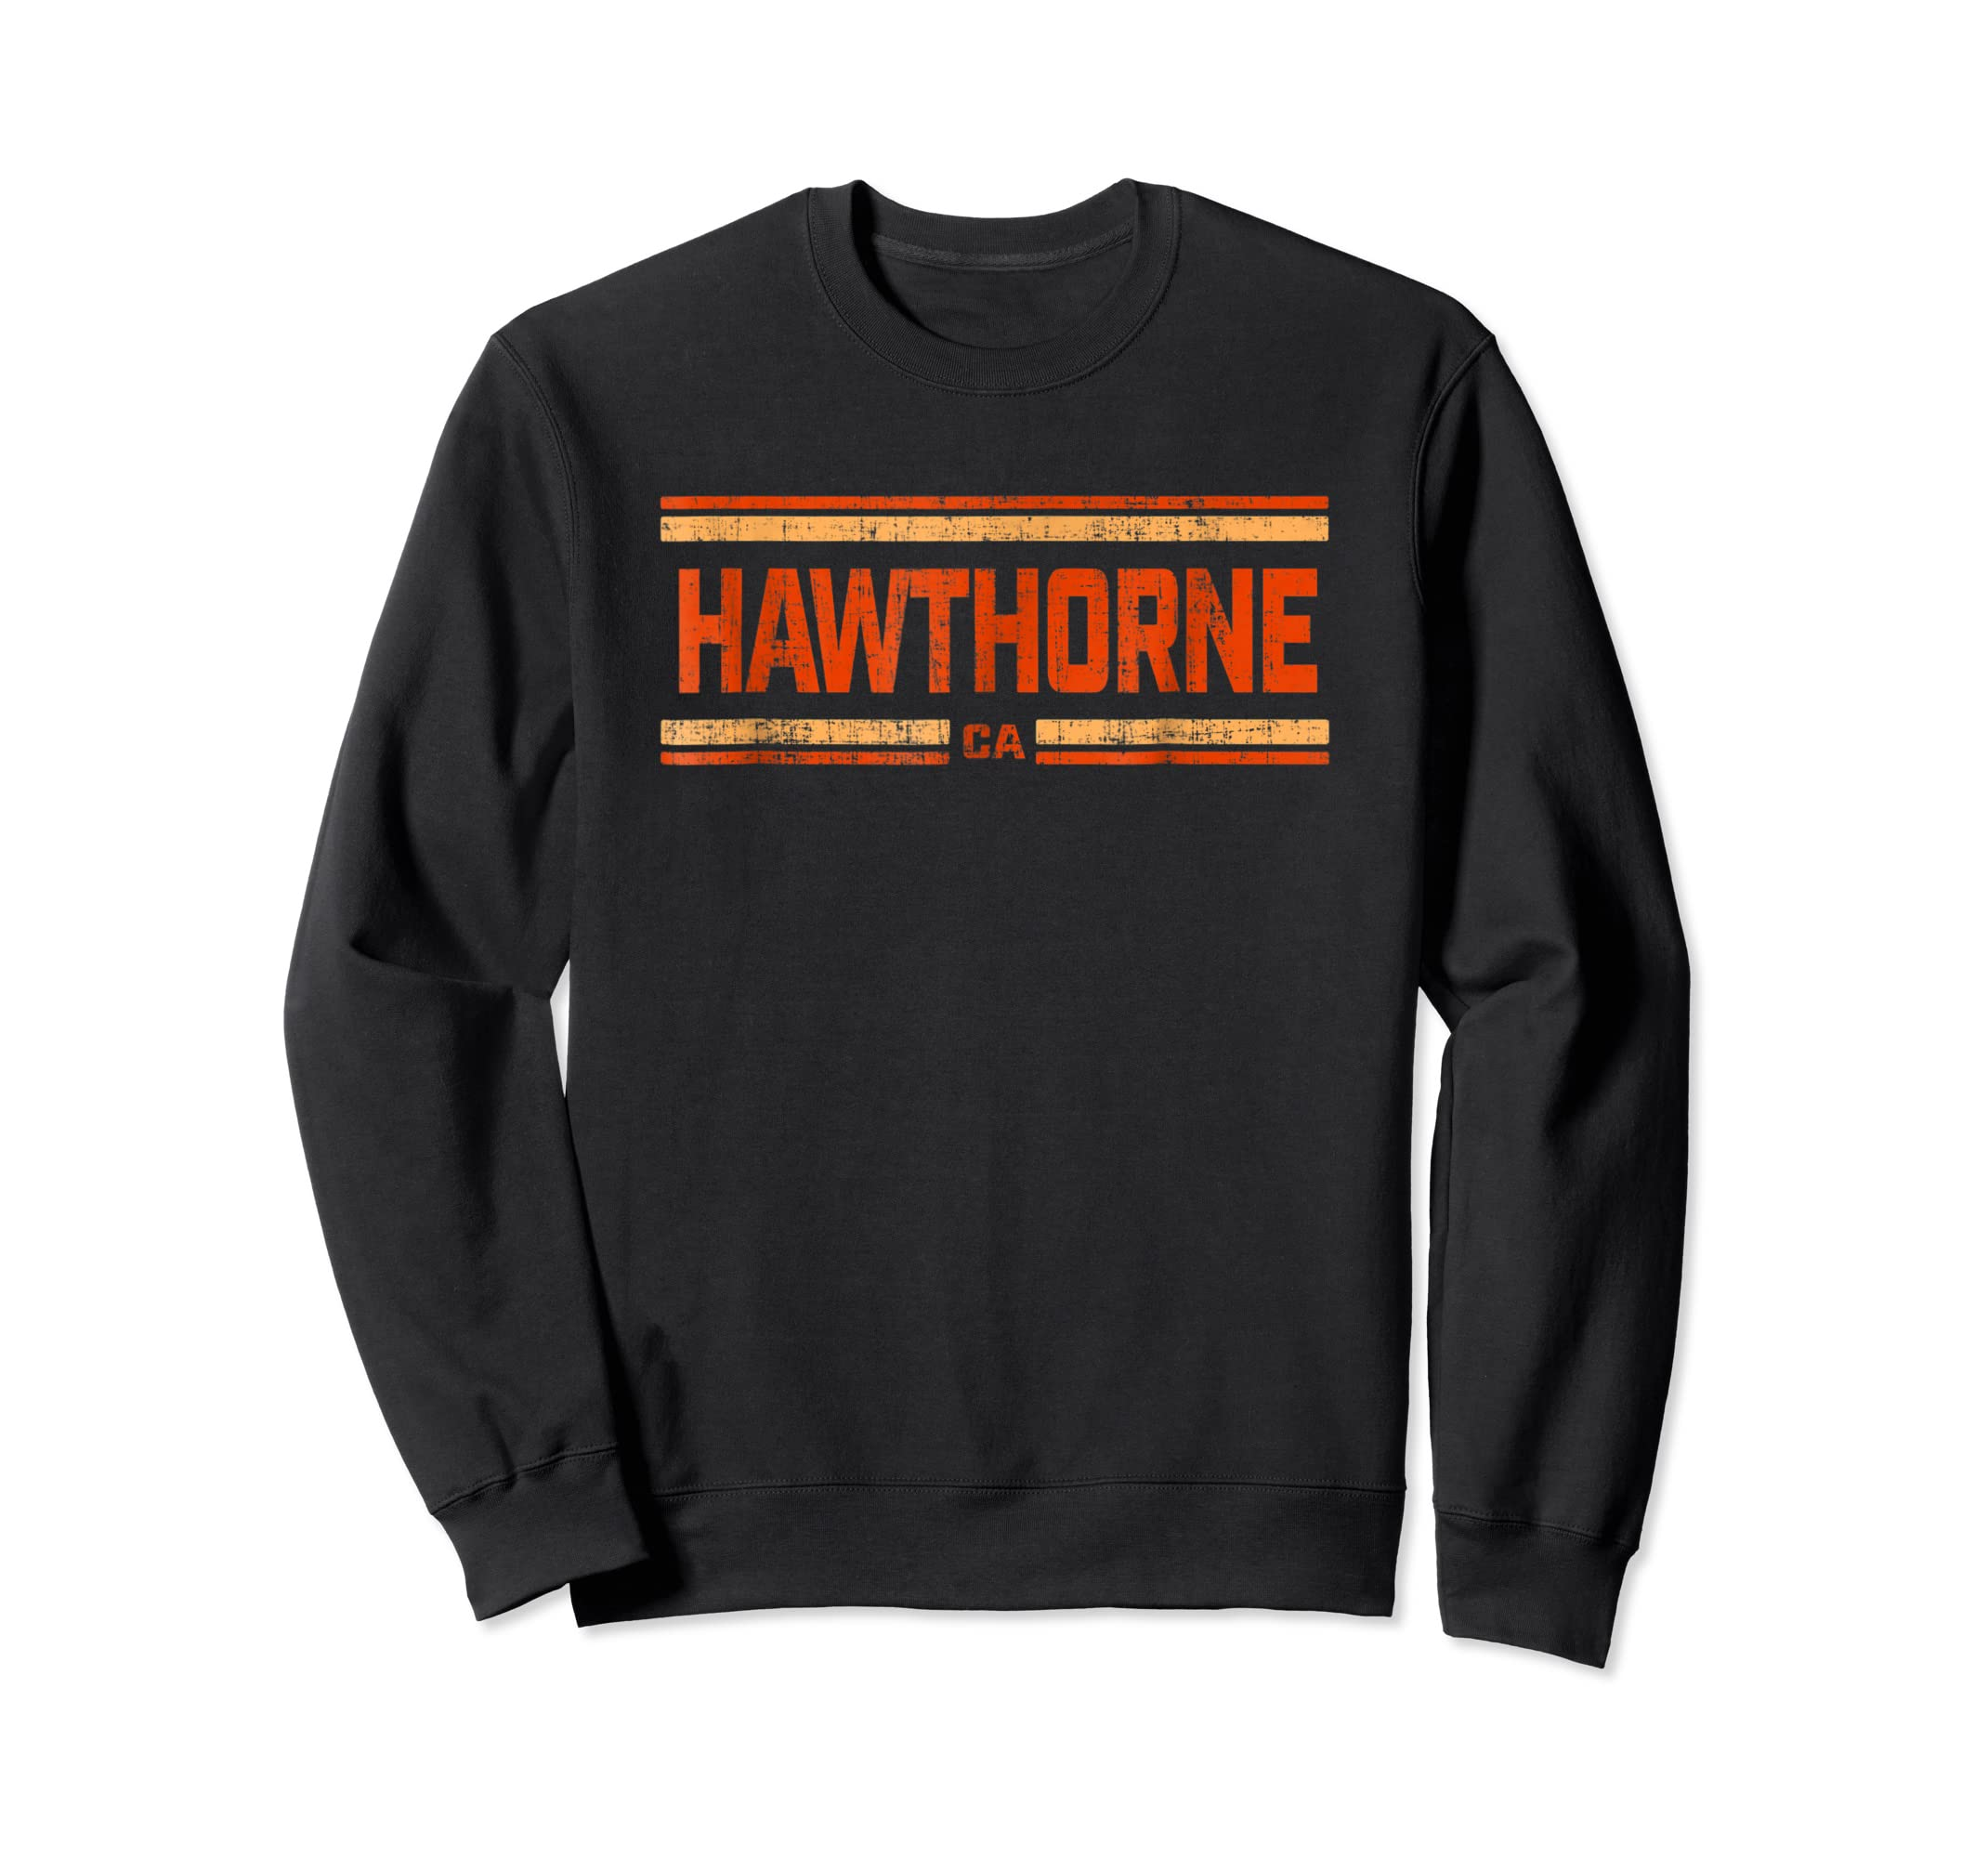 Retro Vintage Hawthorne CA Distressed T-Shirt-Sweatshirt-Black